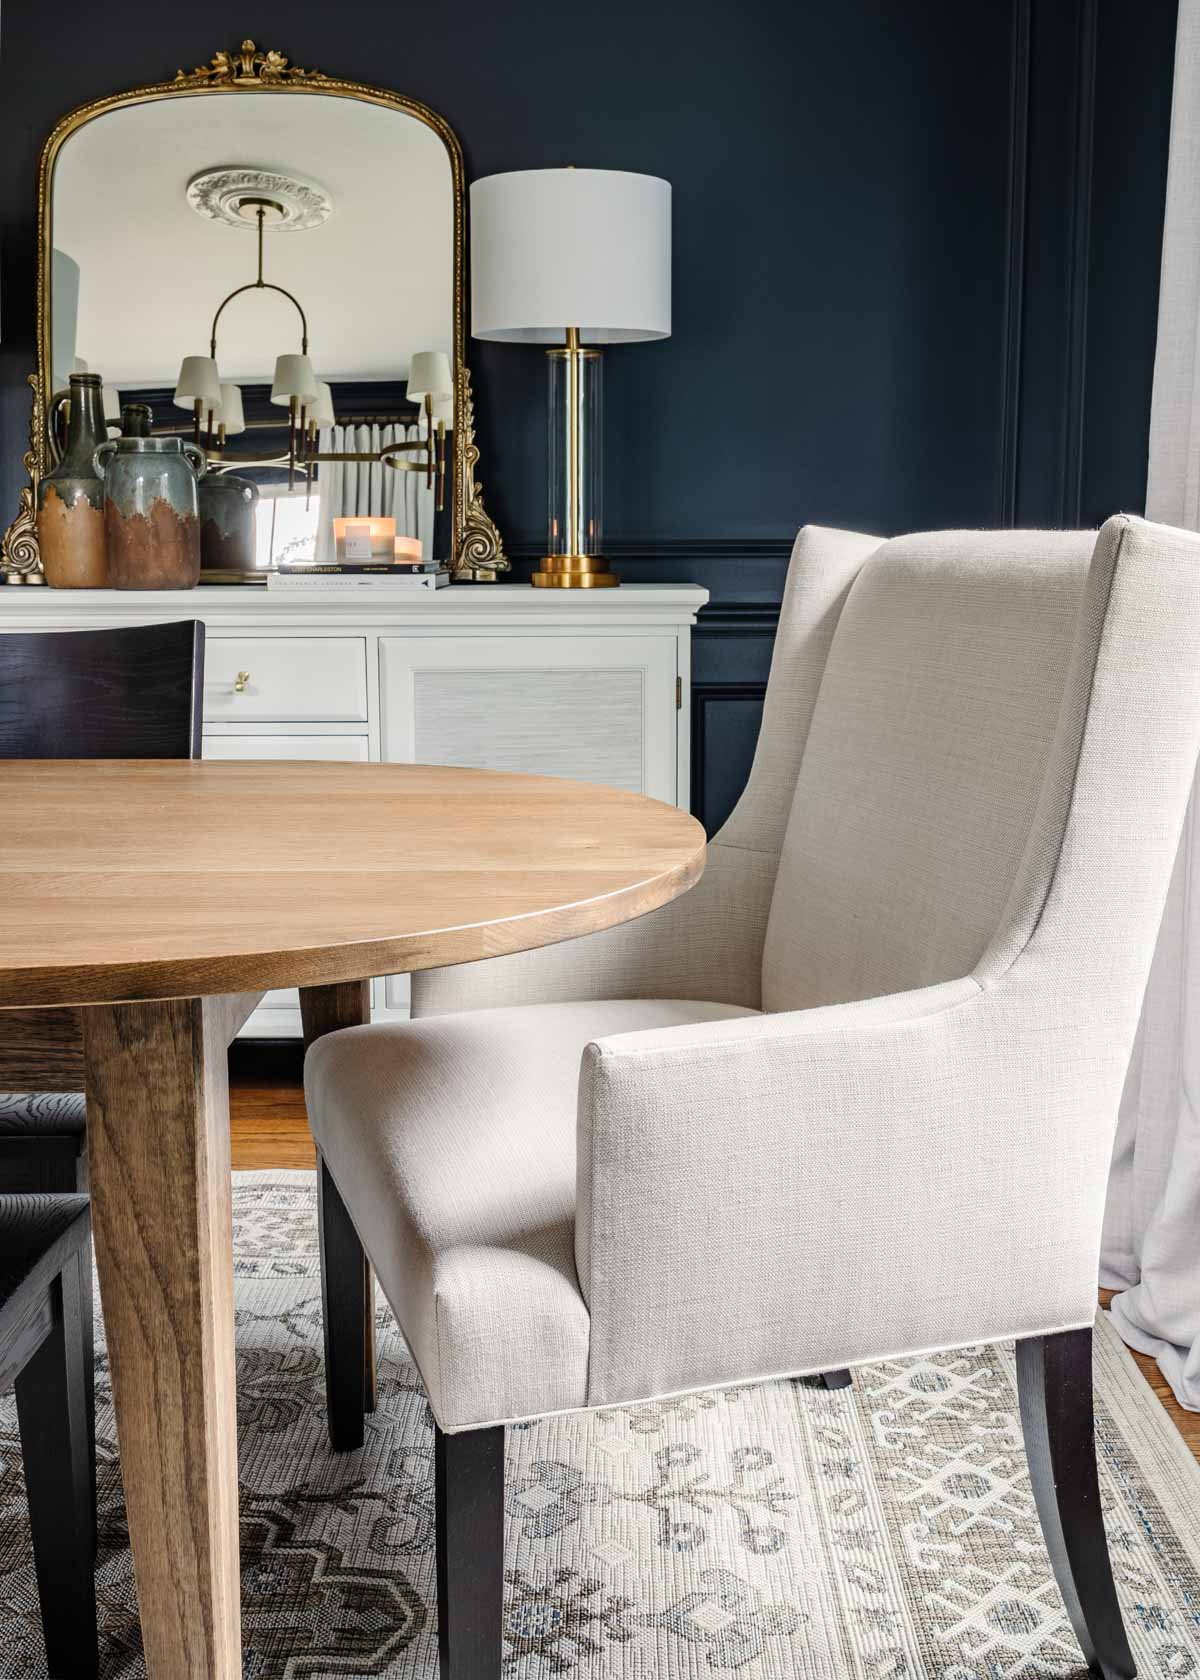 midcentury modern dining table with upholstered chairs, navy walls, and french mirror